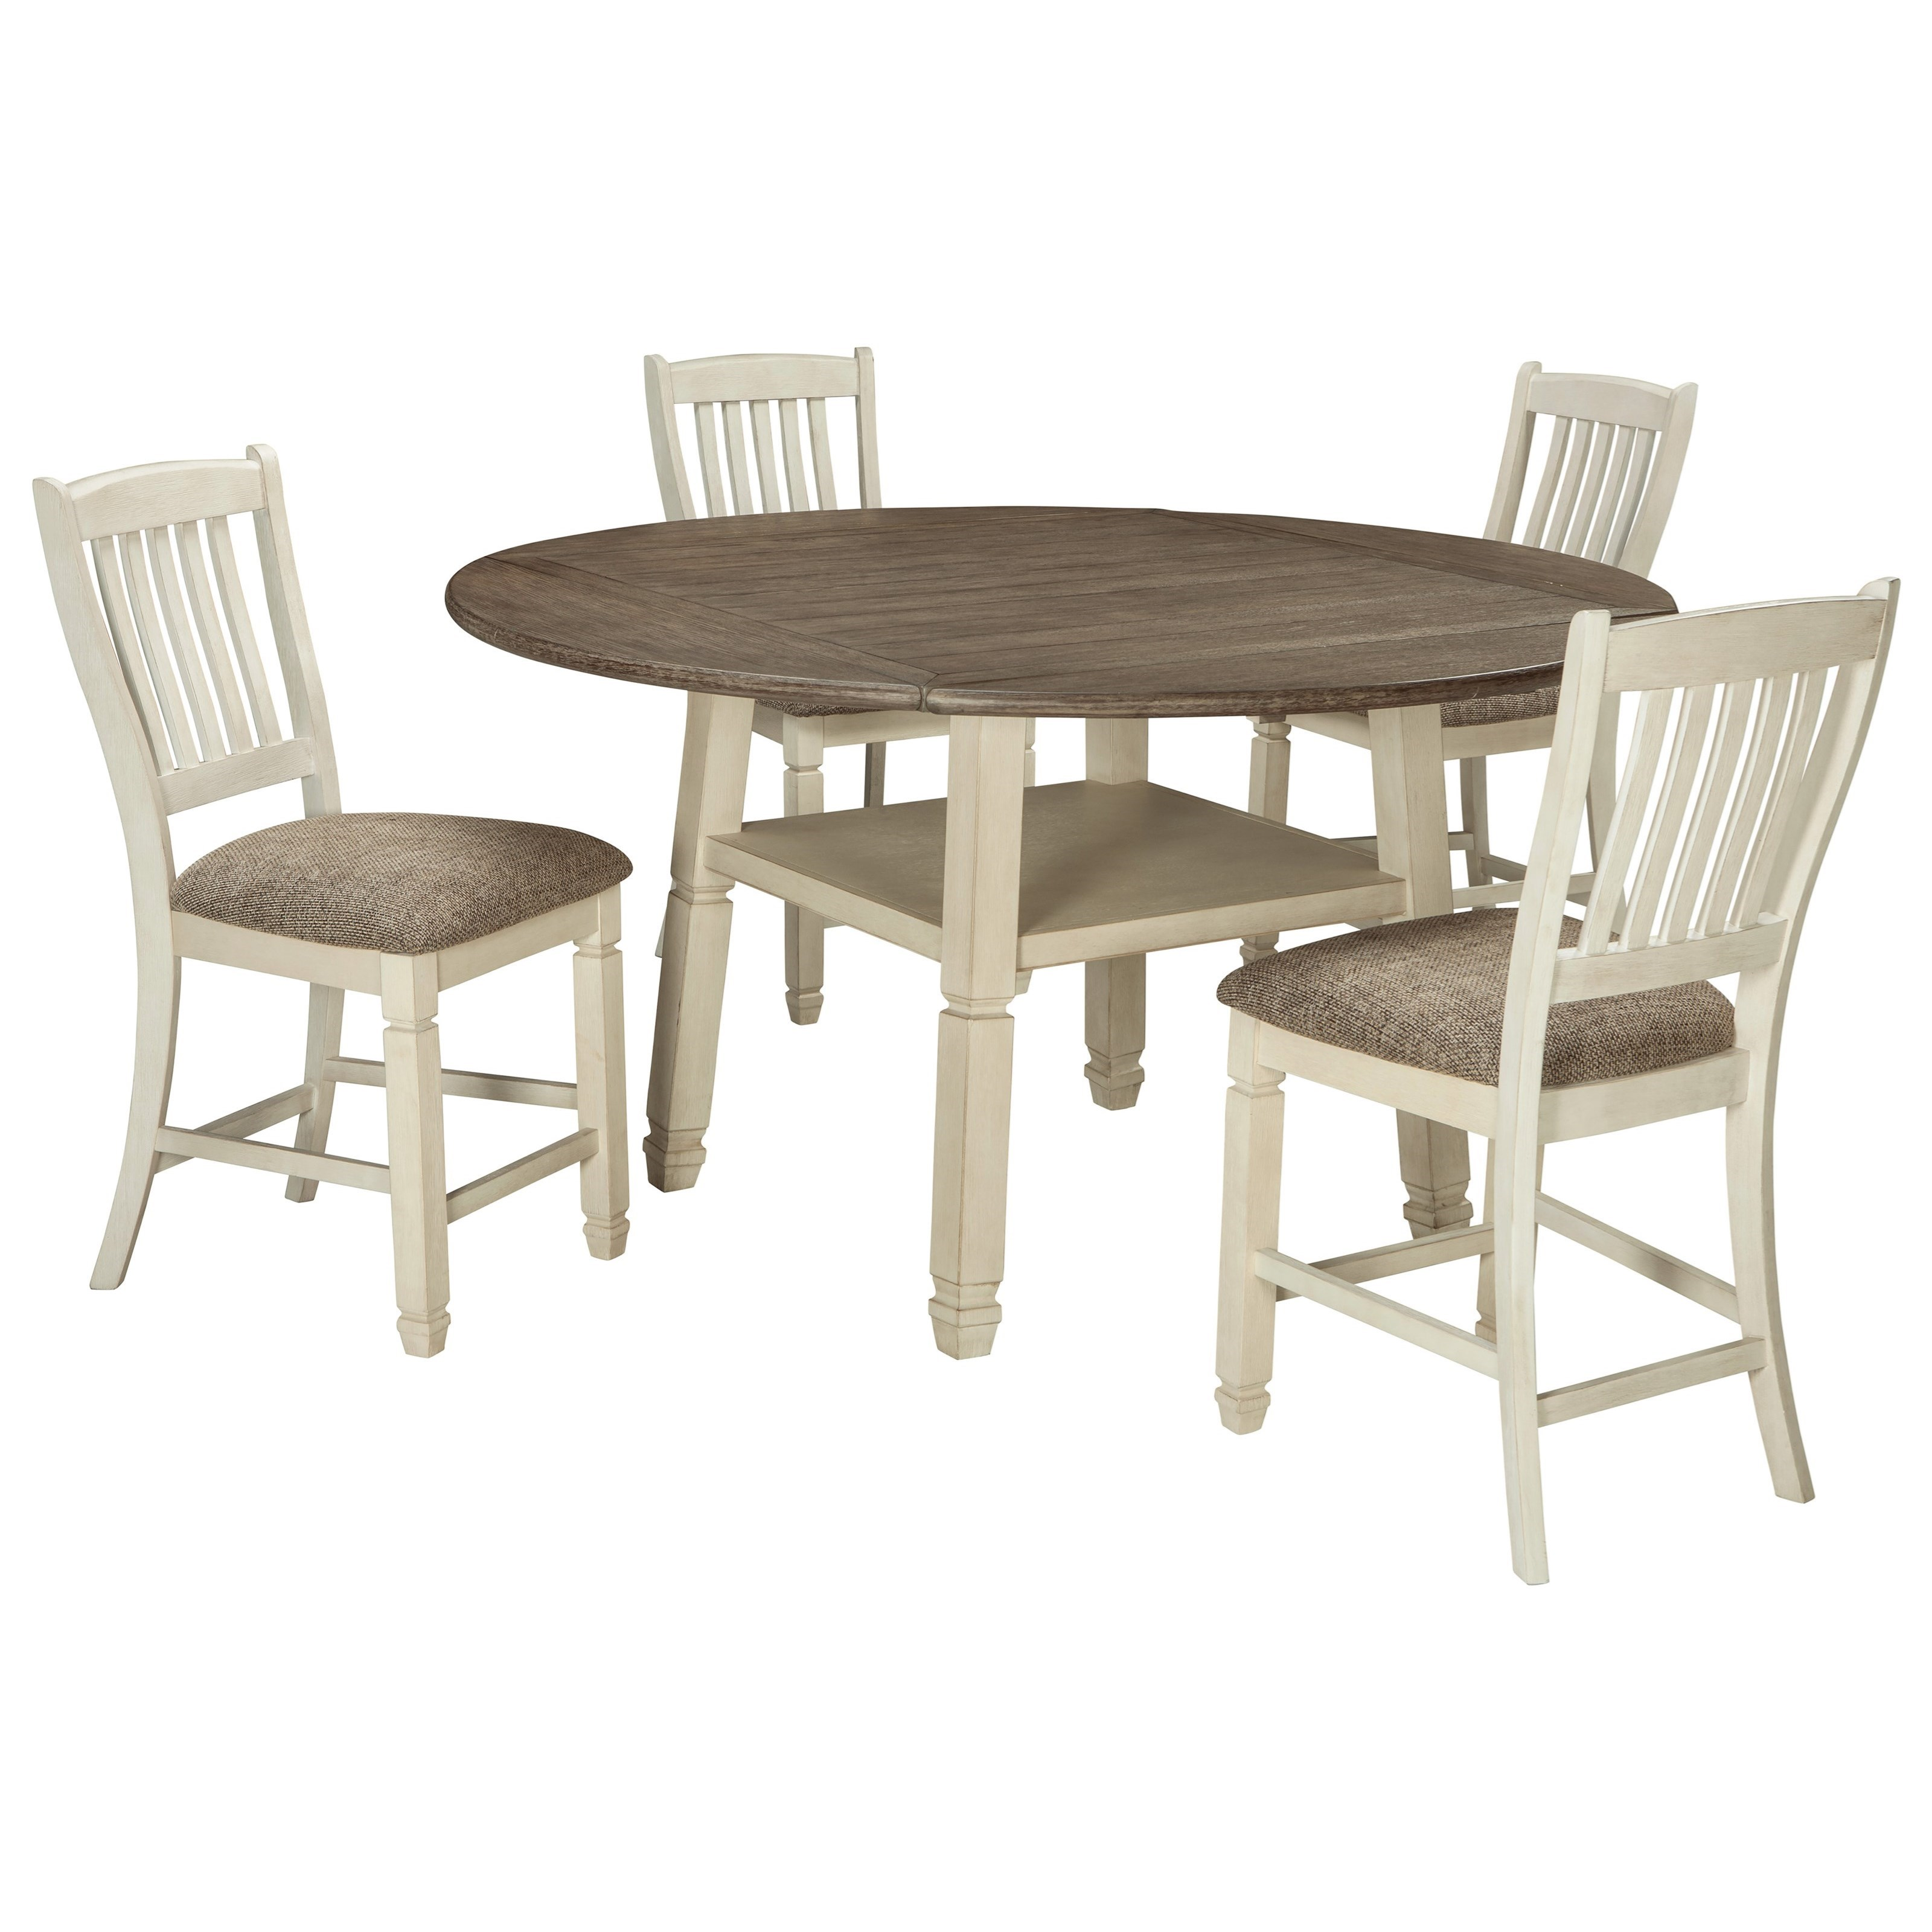 Bolanburg 5-Piece Round Drop Leaf Counter Table Set by Signature Design by Ashley at Zak's Warehouse Clearance Center